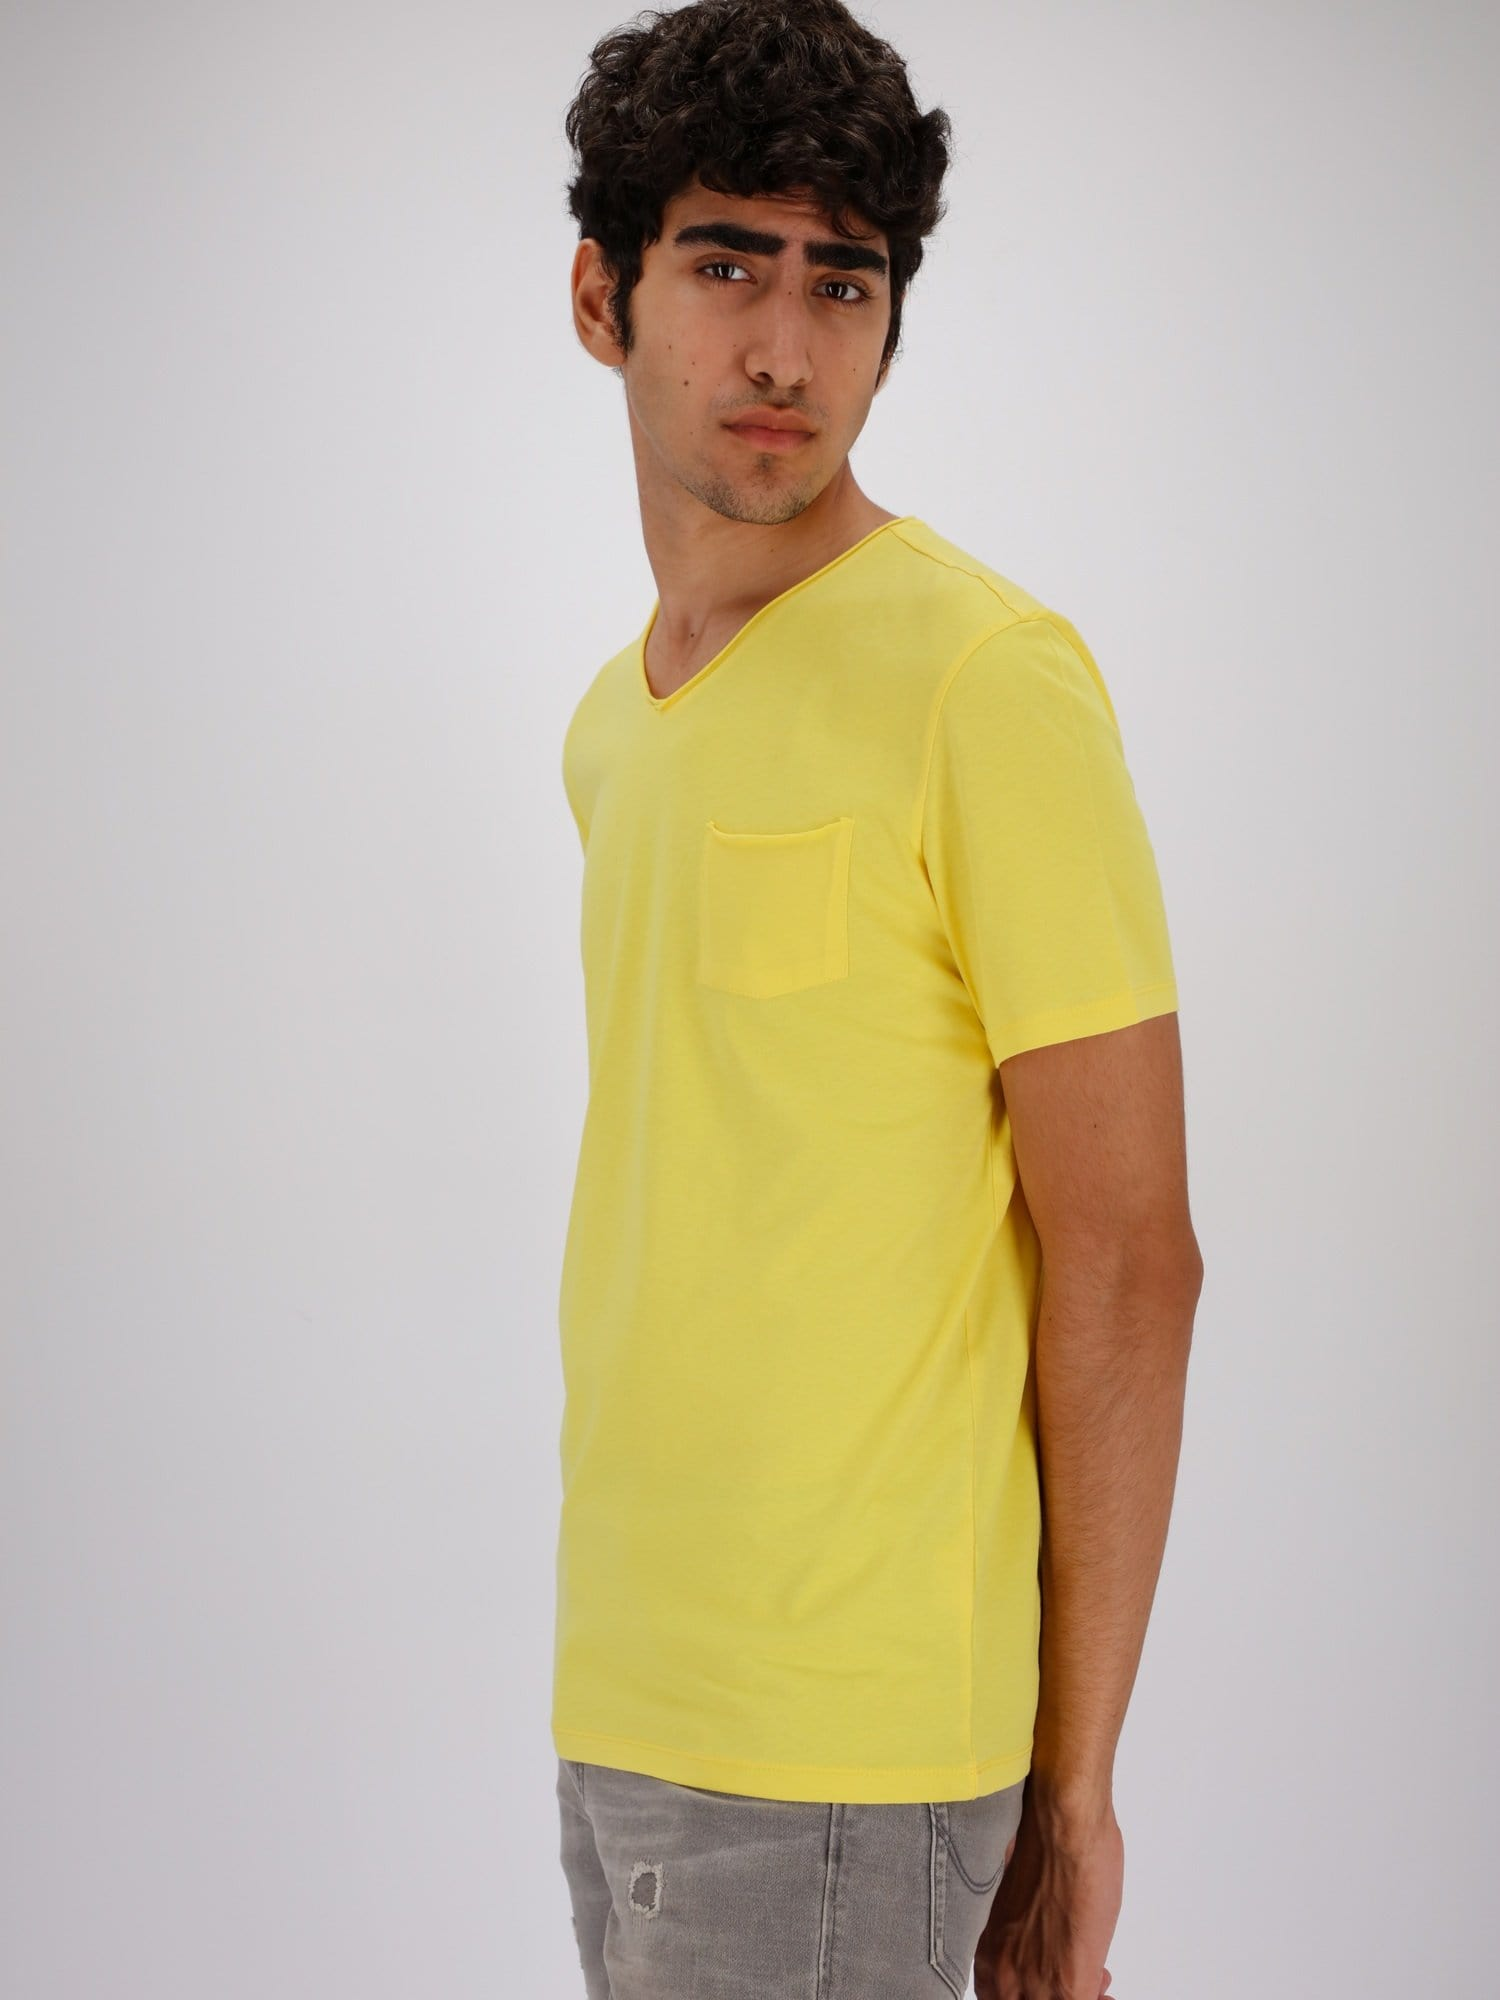 OR T-Shirts Chest Pocket V-Neck Solid T-Shirt